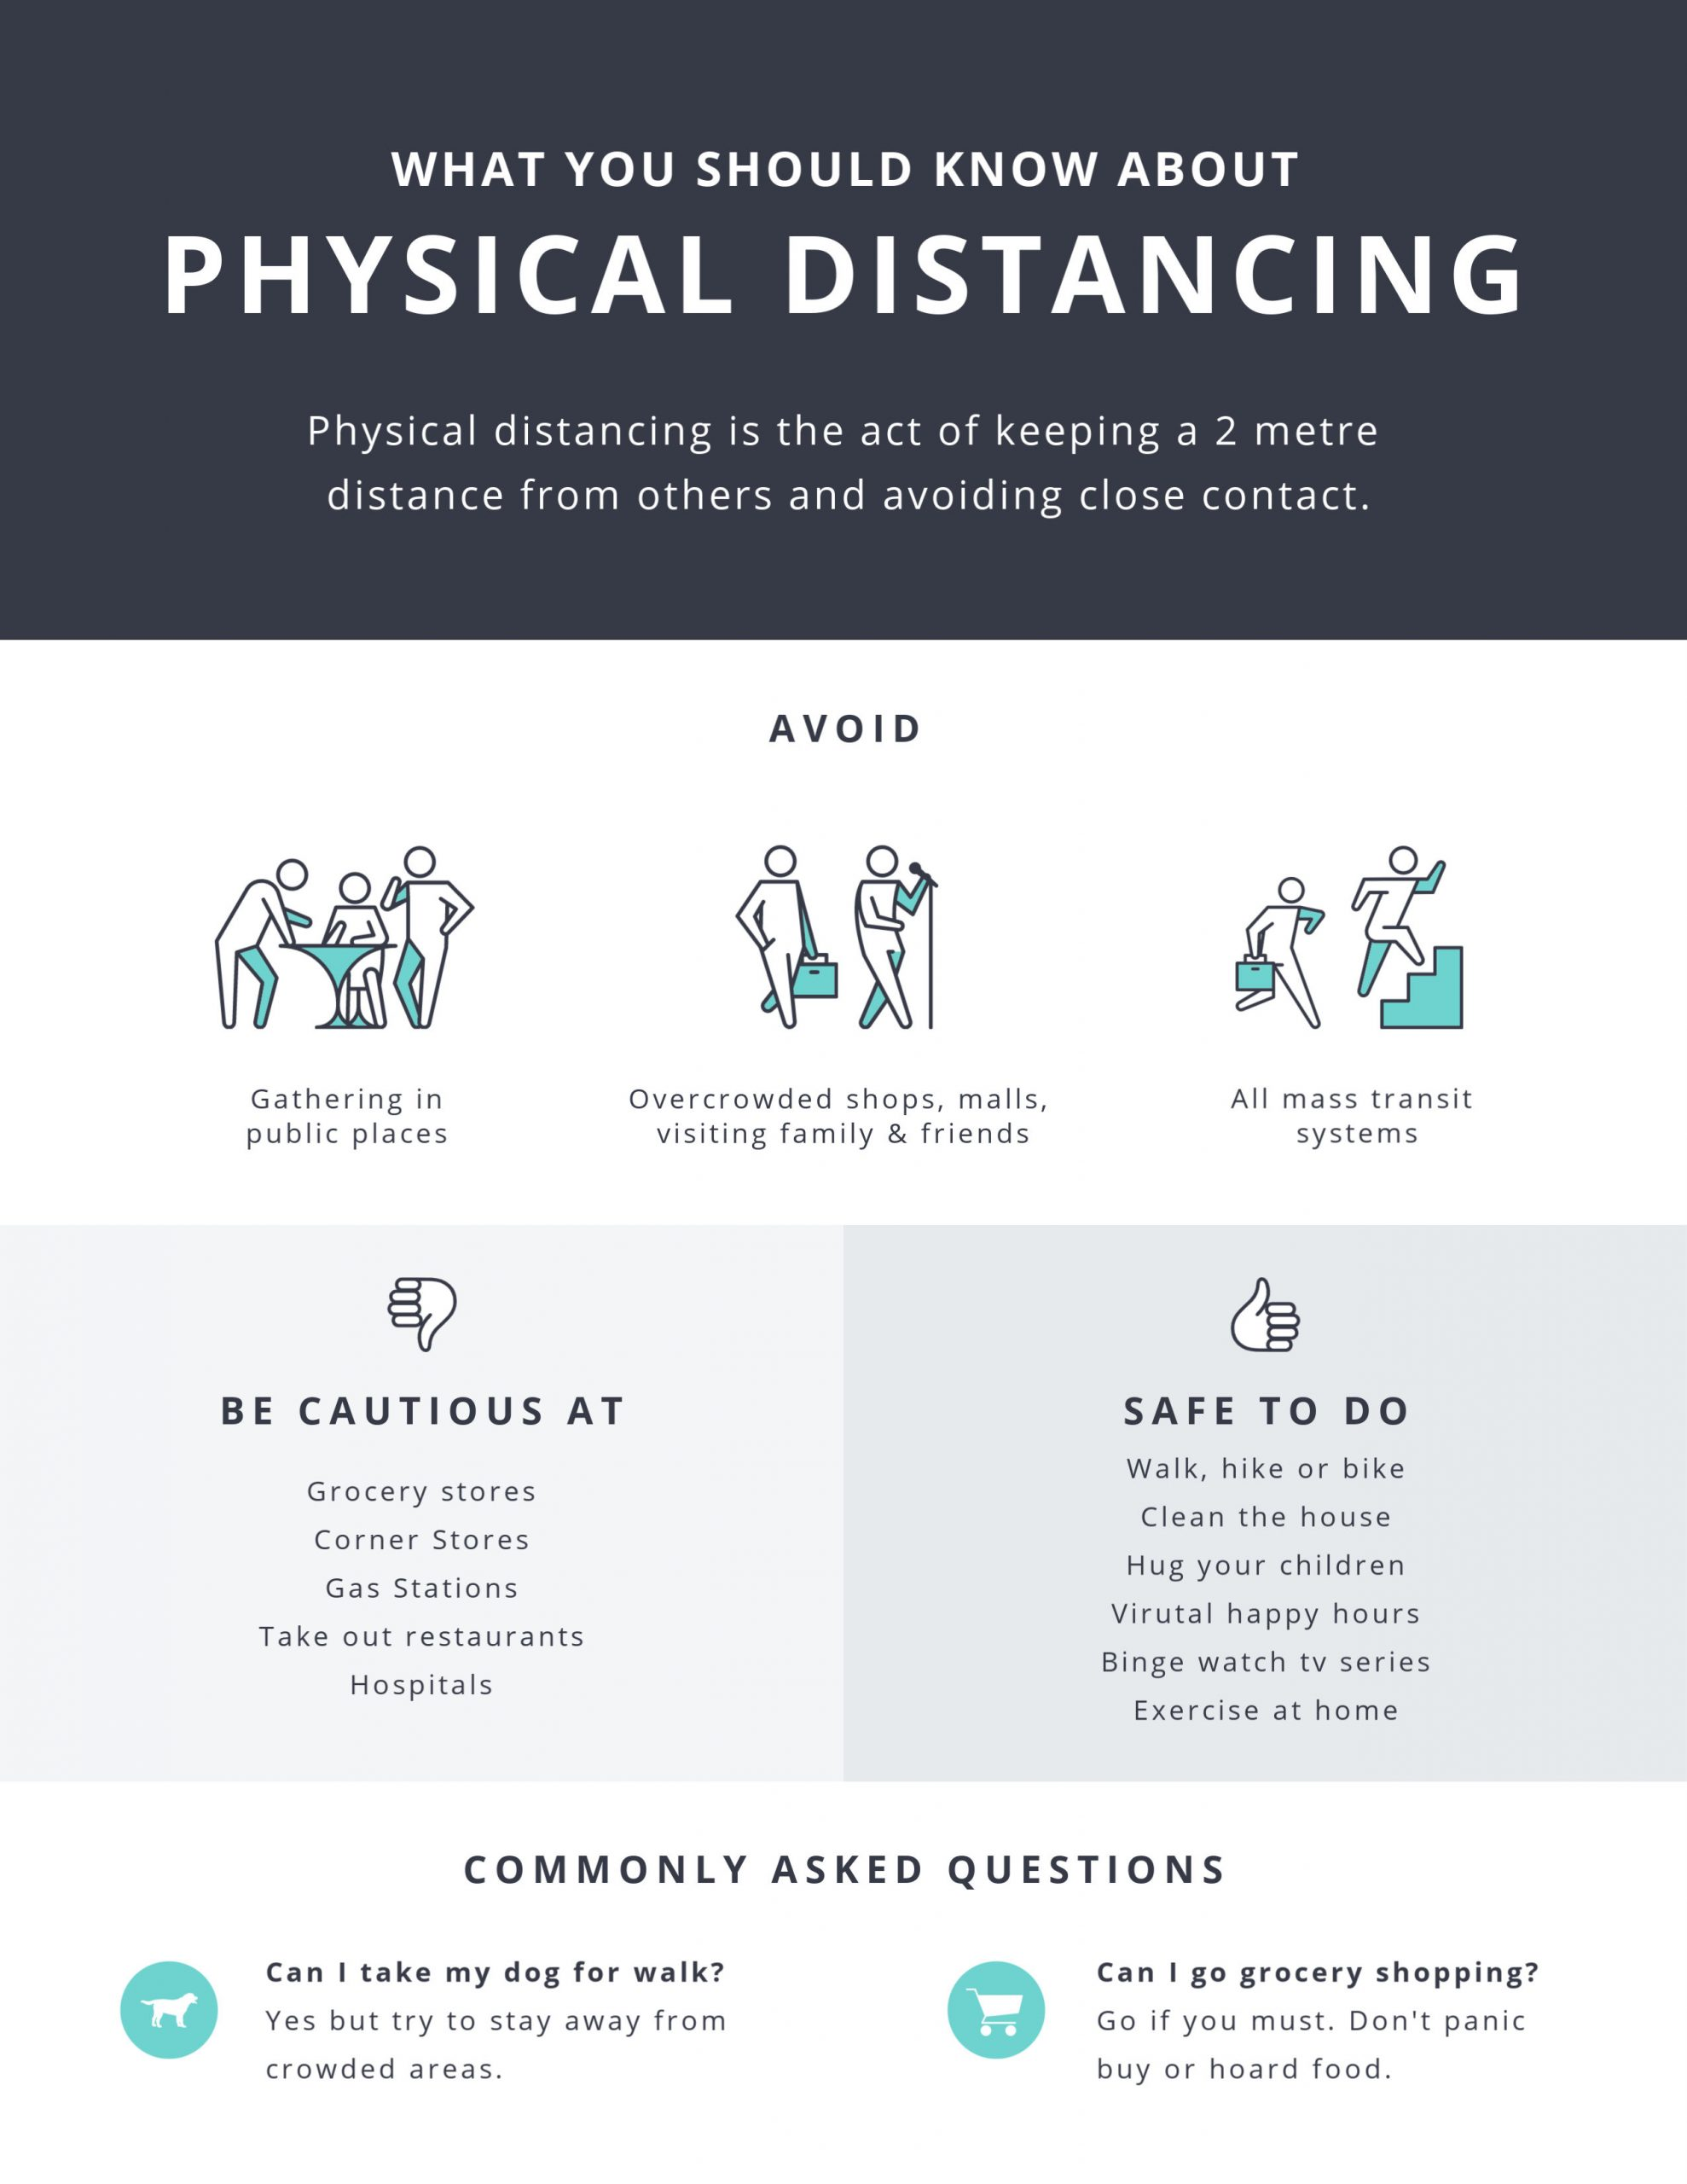 Covid-19 Physical Distancing Infographic